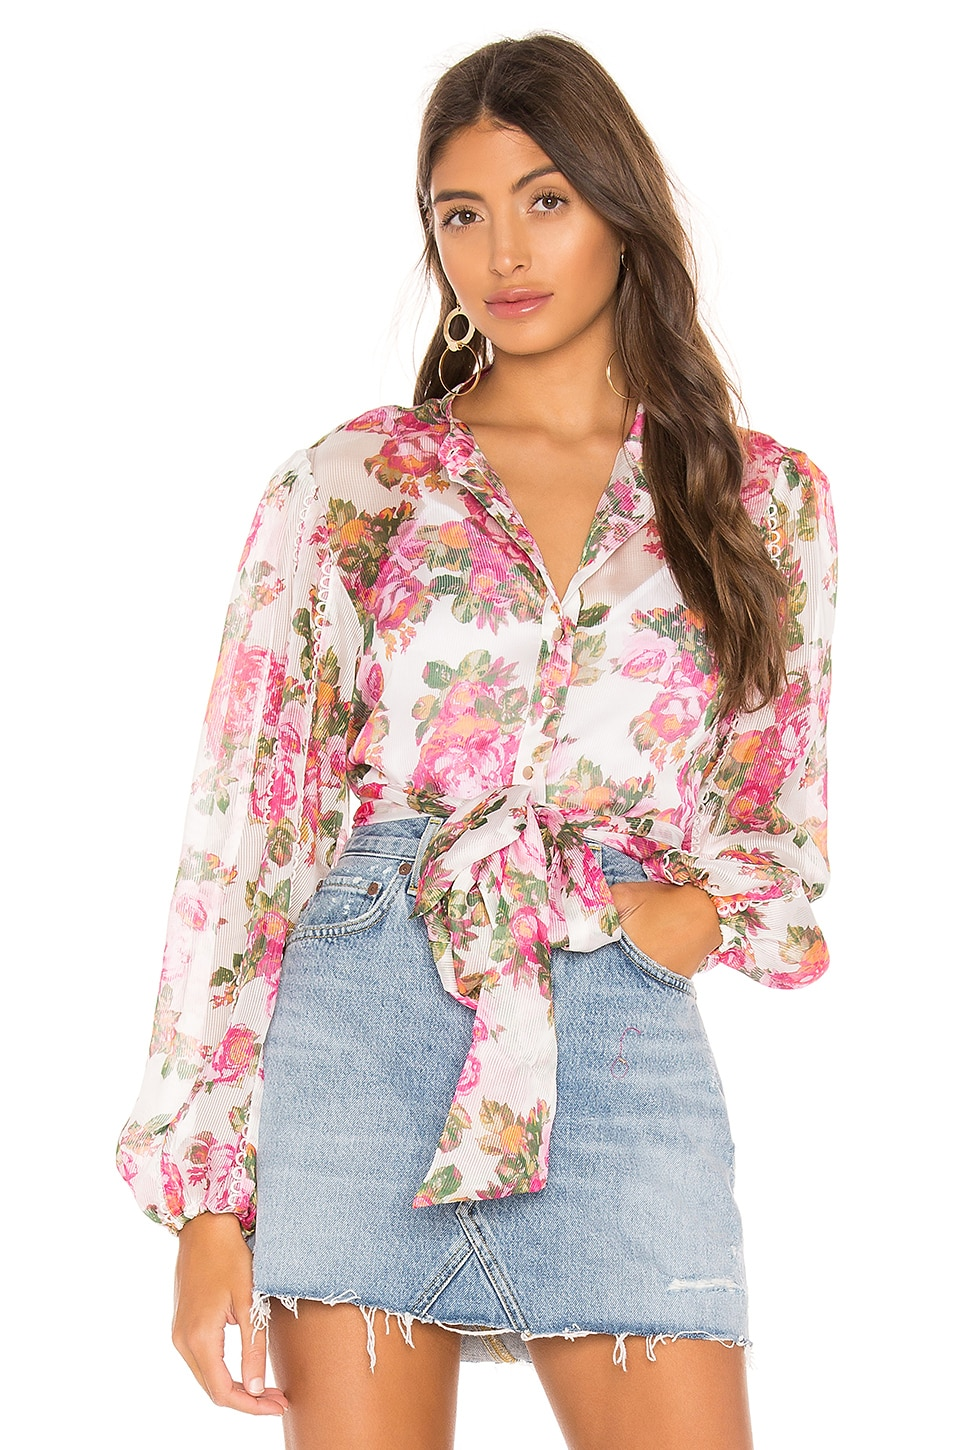 keepsake Oblivion Top in Ivory Rose Floral